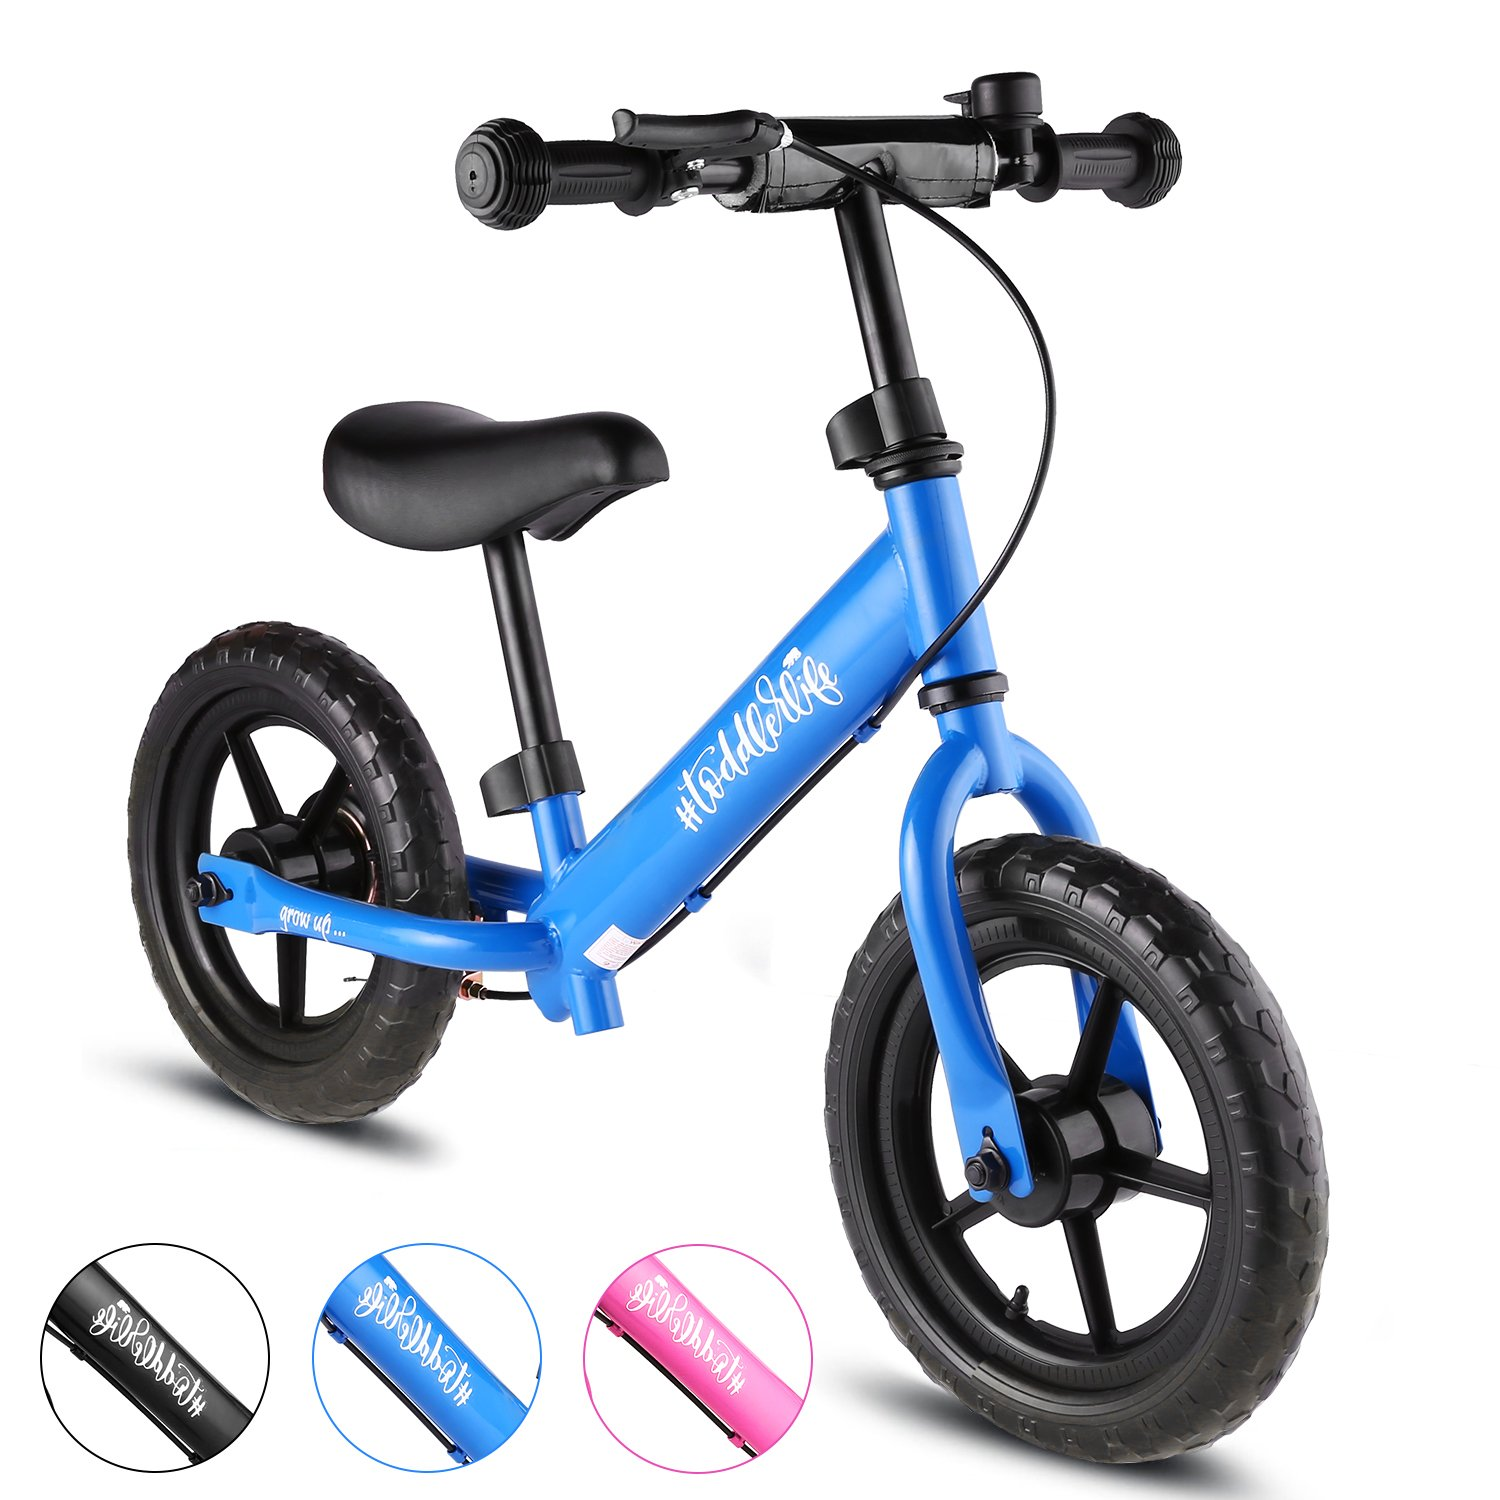 BIKFUN Balance Bike for Kids, No Pedal Traning Children Cycles with Adjustable Handlebar and Seat, Toddler Walking Bicycle with Bell and Brake (Sport-Blue)